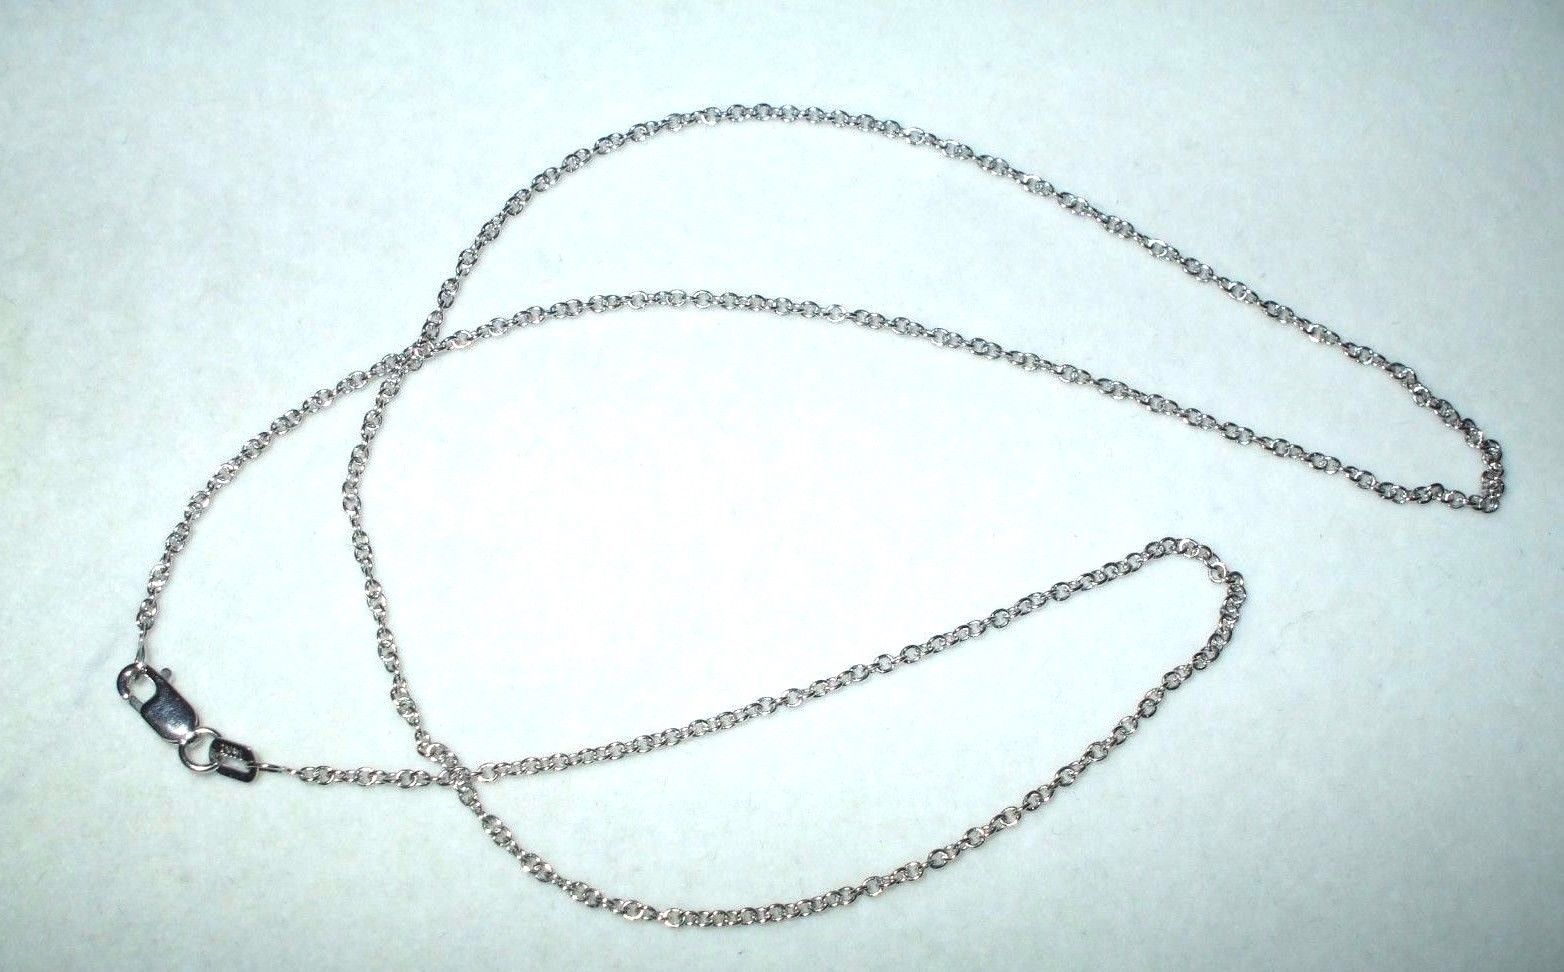 18 inch 14K white gold cable chain with lobster clasp 2.4 grams 0.9 mm $350